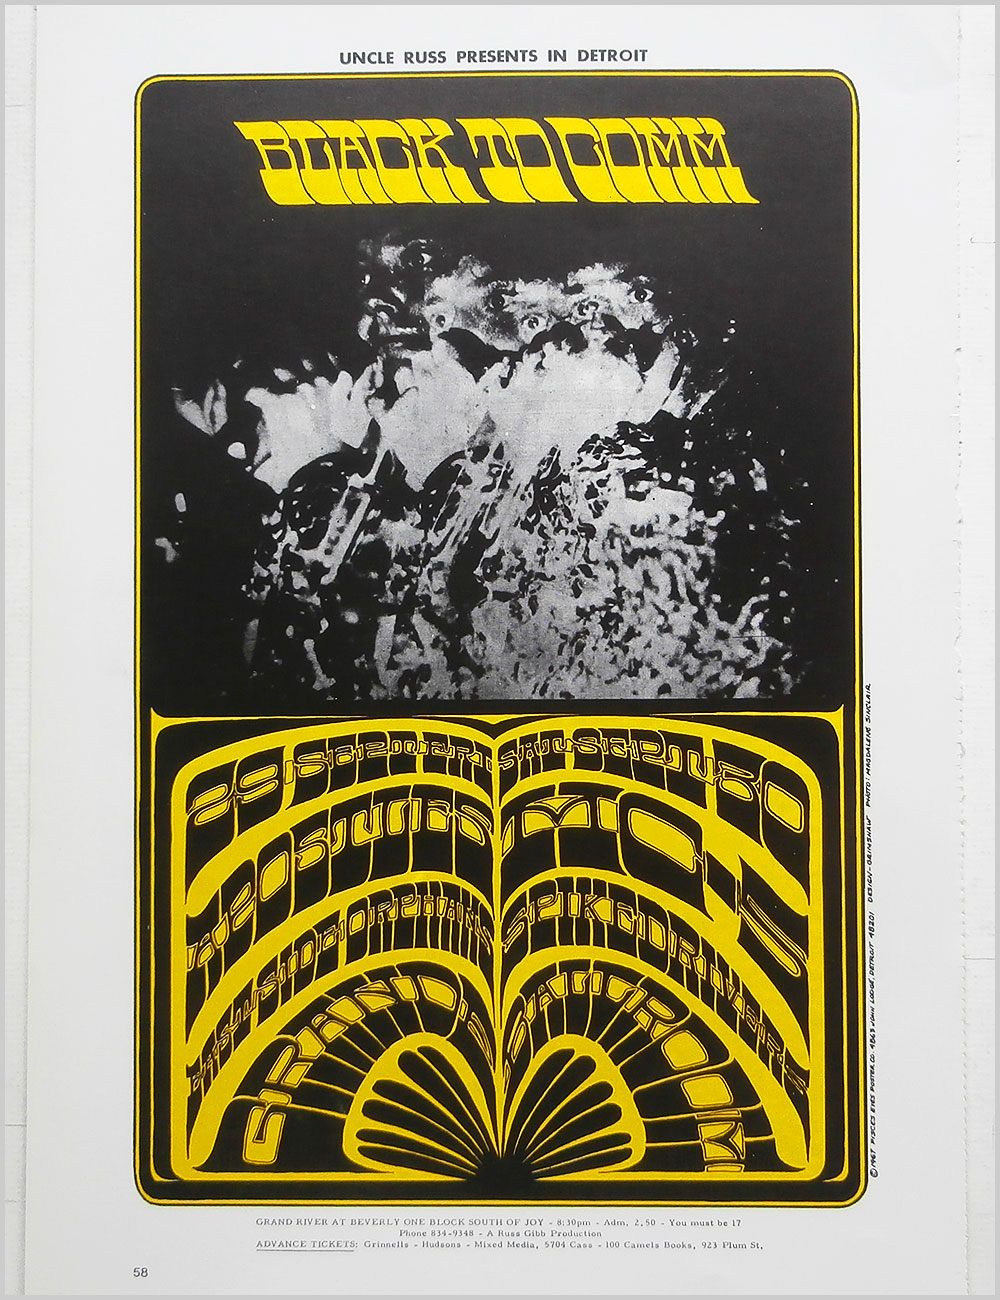 Family and MC5 - Rock Poster: Family: Freak Show b/w MC5: Black To Comm, at The Grande Ballroom (PB100294)